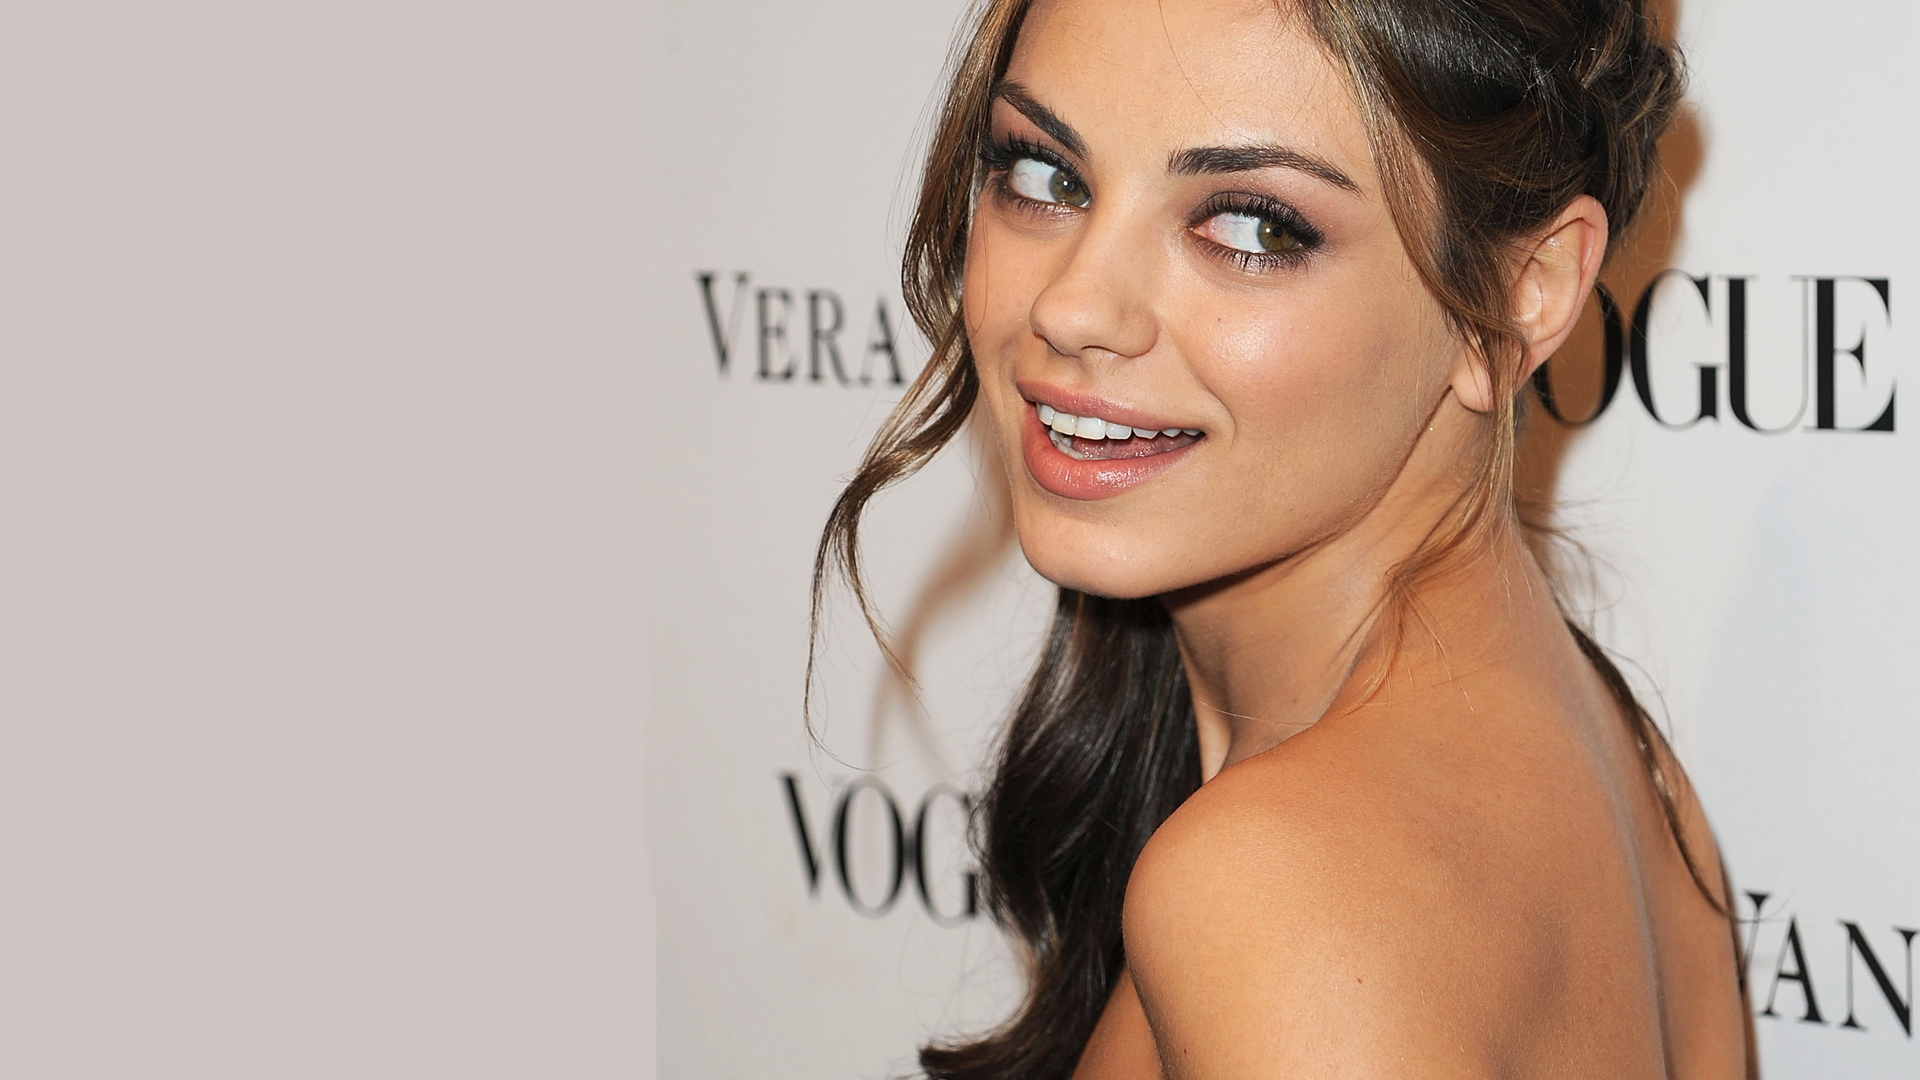 Mila Kunis only continues raking in those spellbinding titles 1920x1080